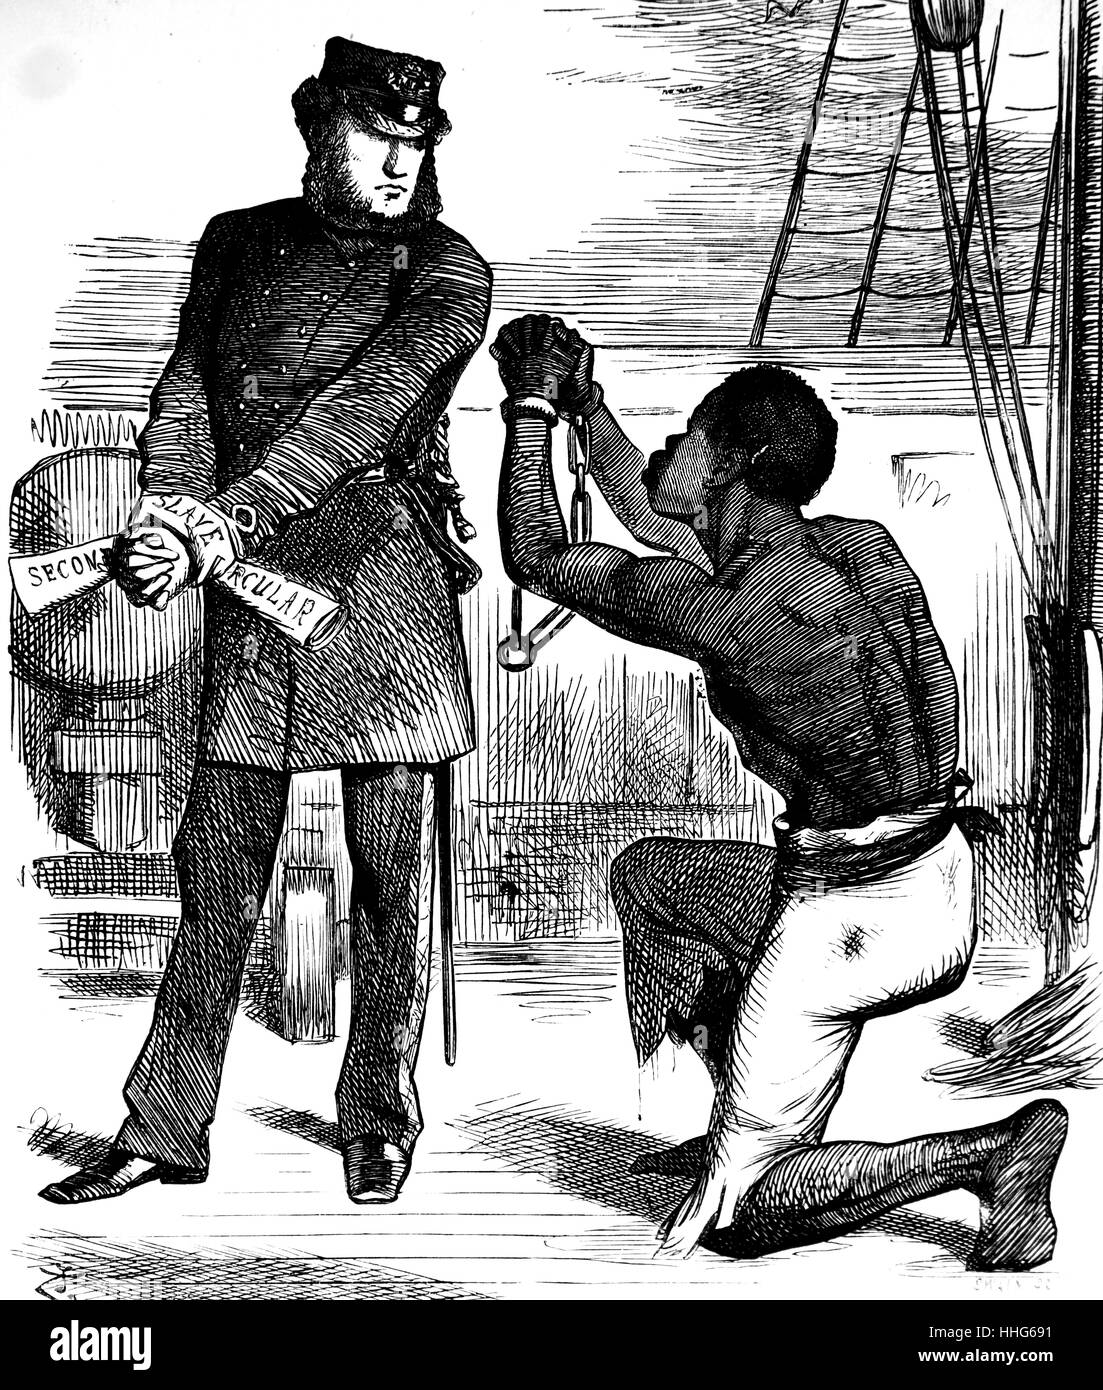 black-and-white-erotic-slave-cartoon